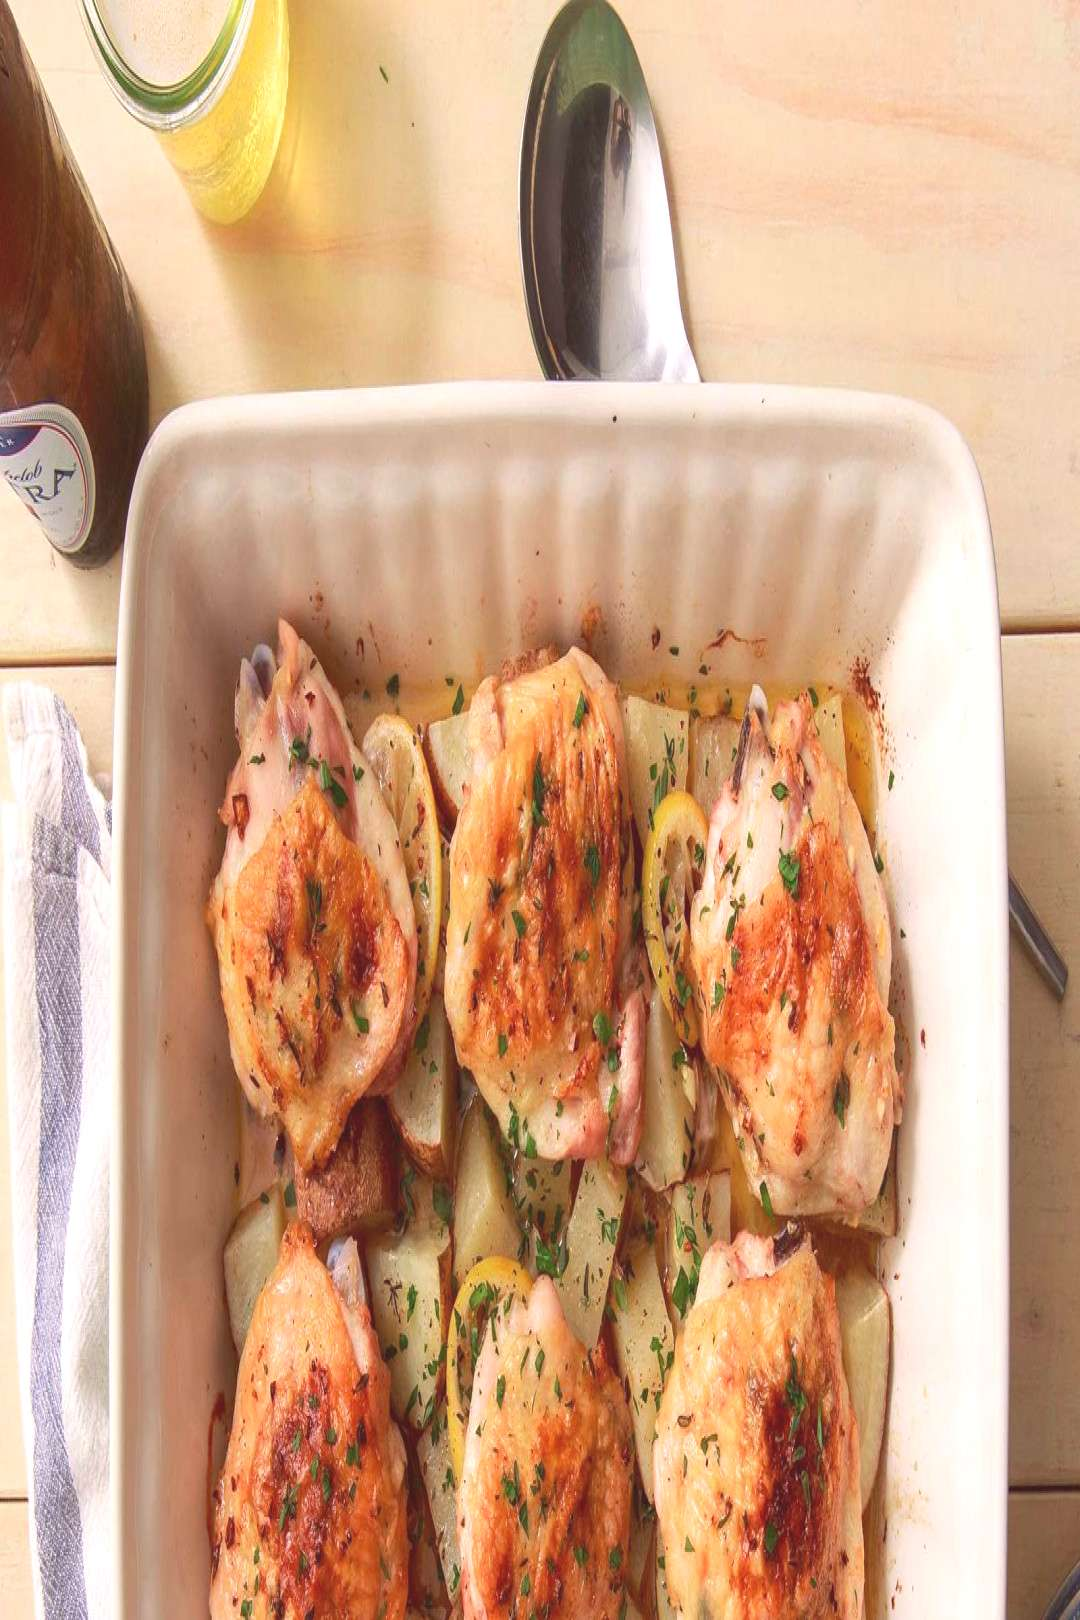 Garlic Butter Baked Chicken Thighs Are The Perfect Simple DinnerDelish UK